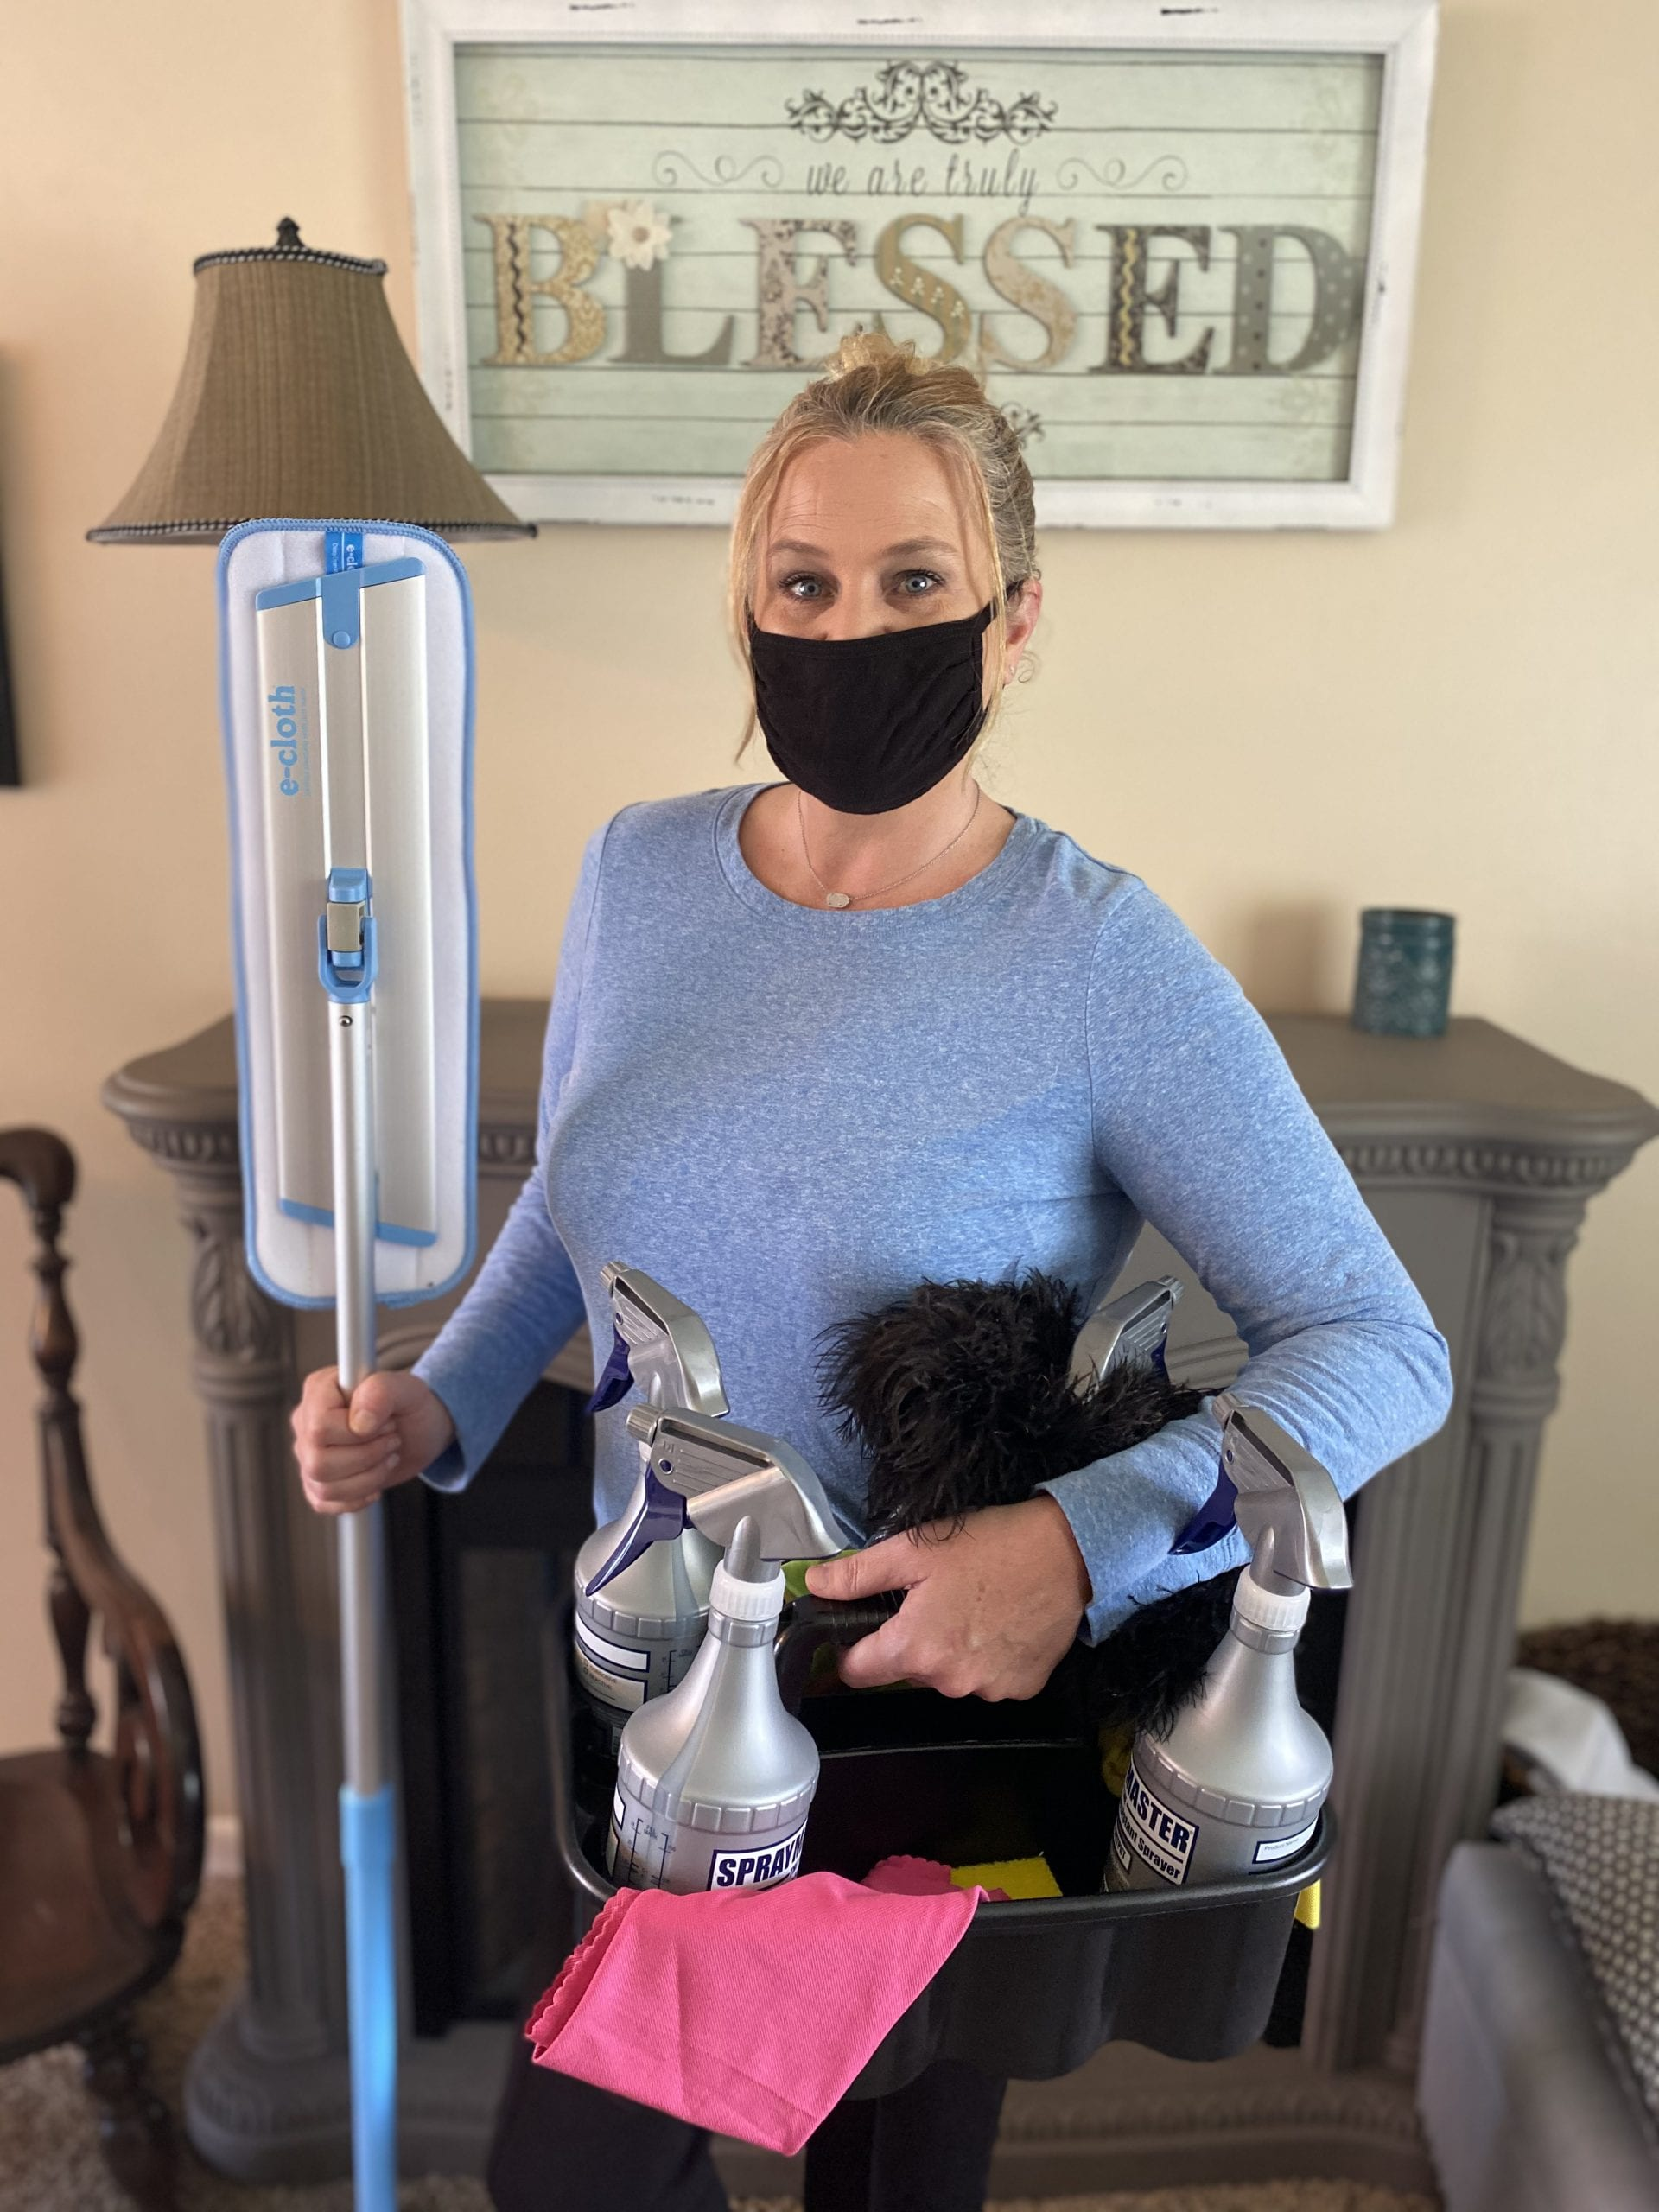 Christine the owner of valrico home maid serviceon the job cleaning